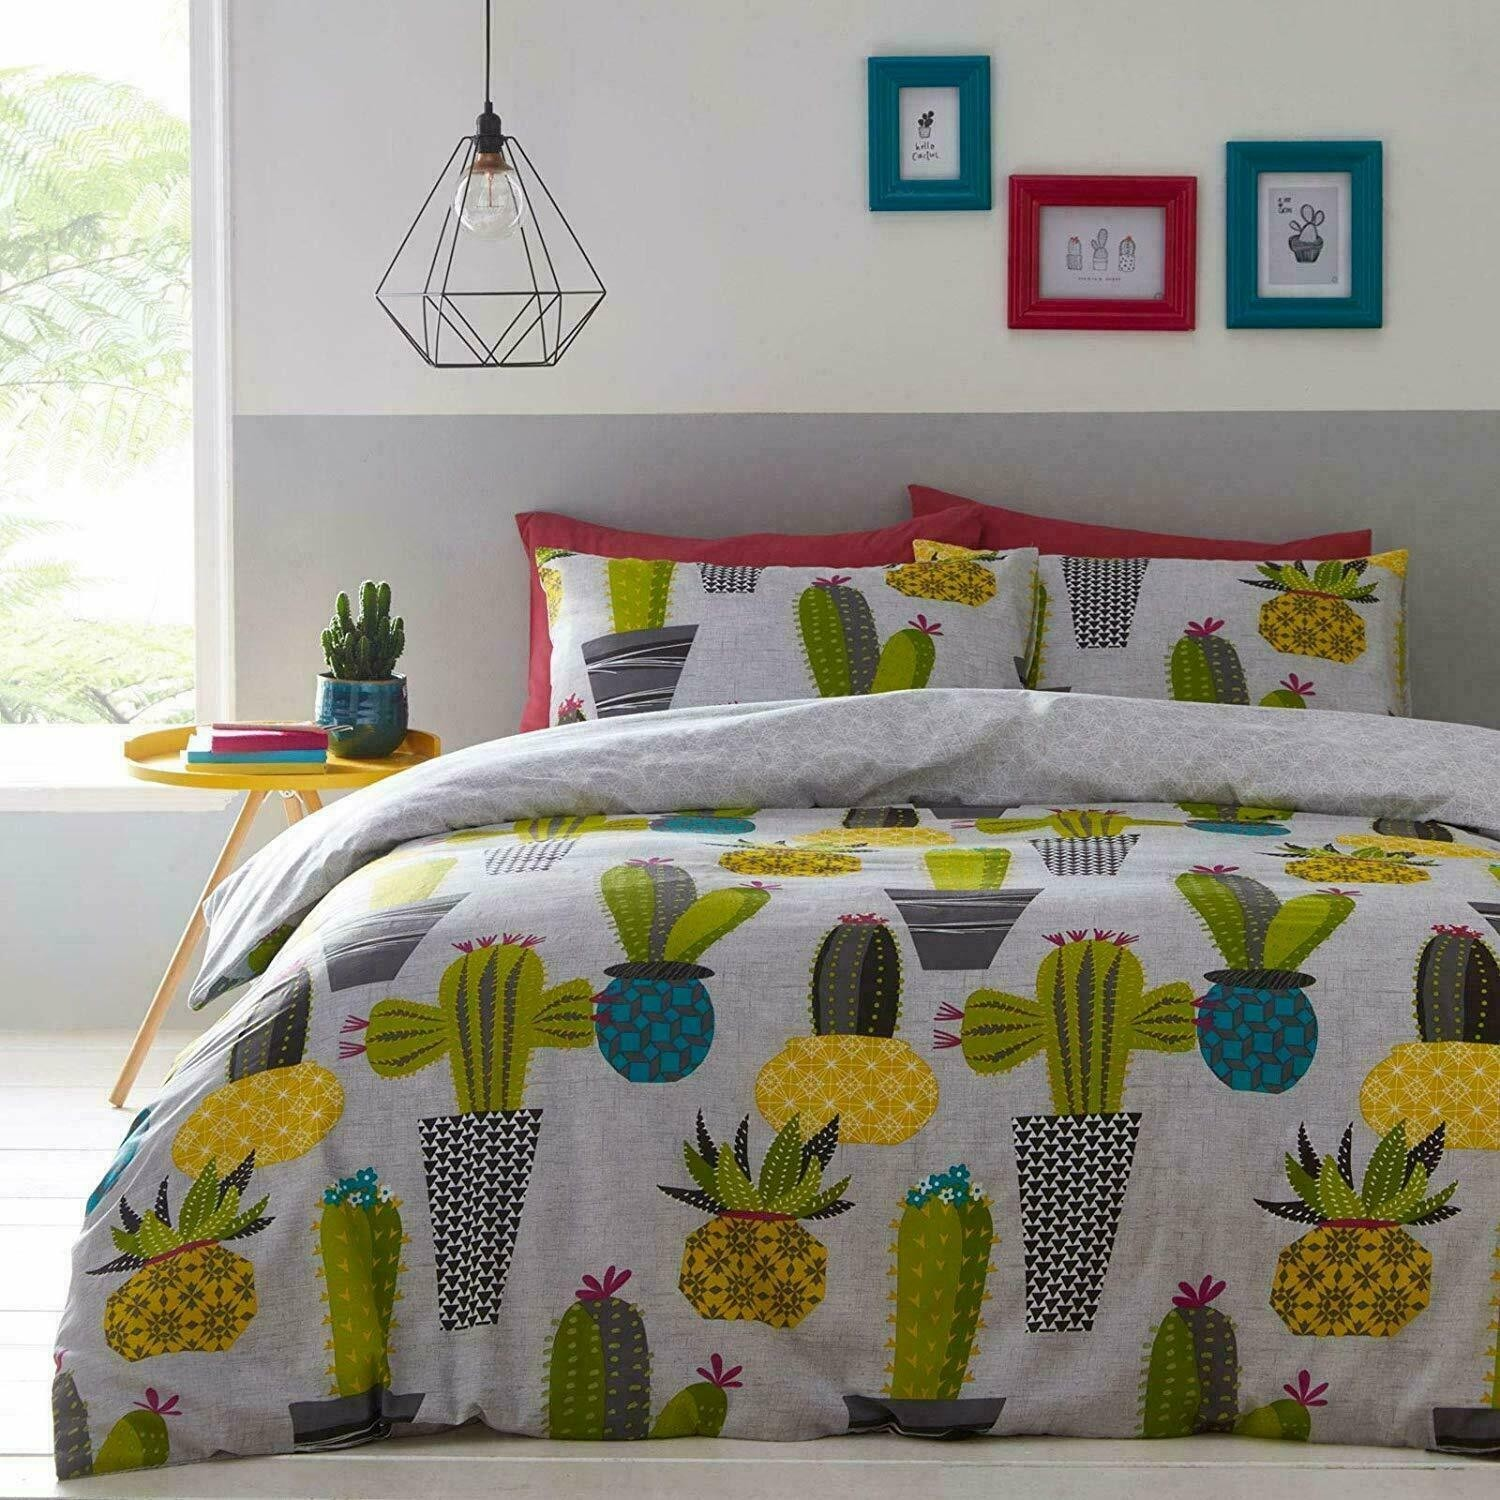 Double Size Potted Cactus Design Reversible Duvet Cover & Matching Pillowcases